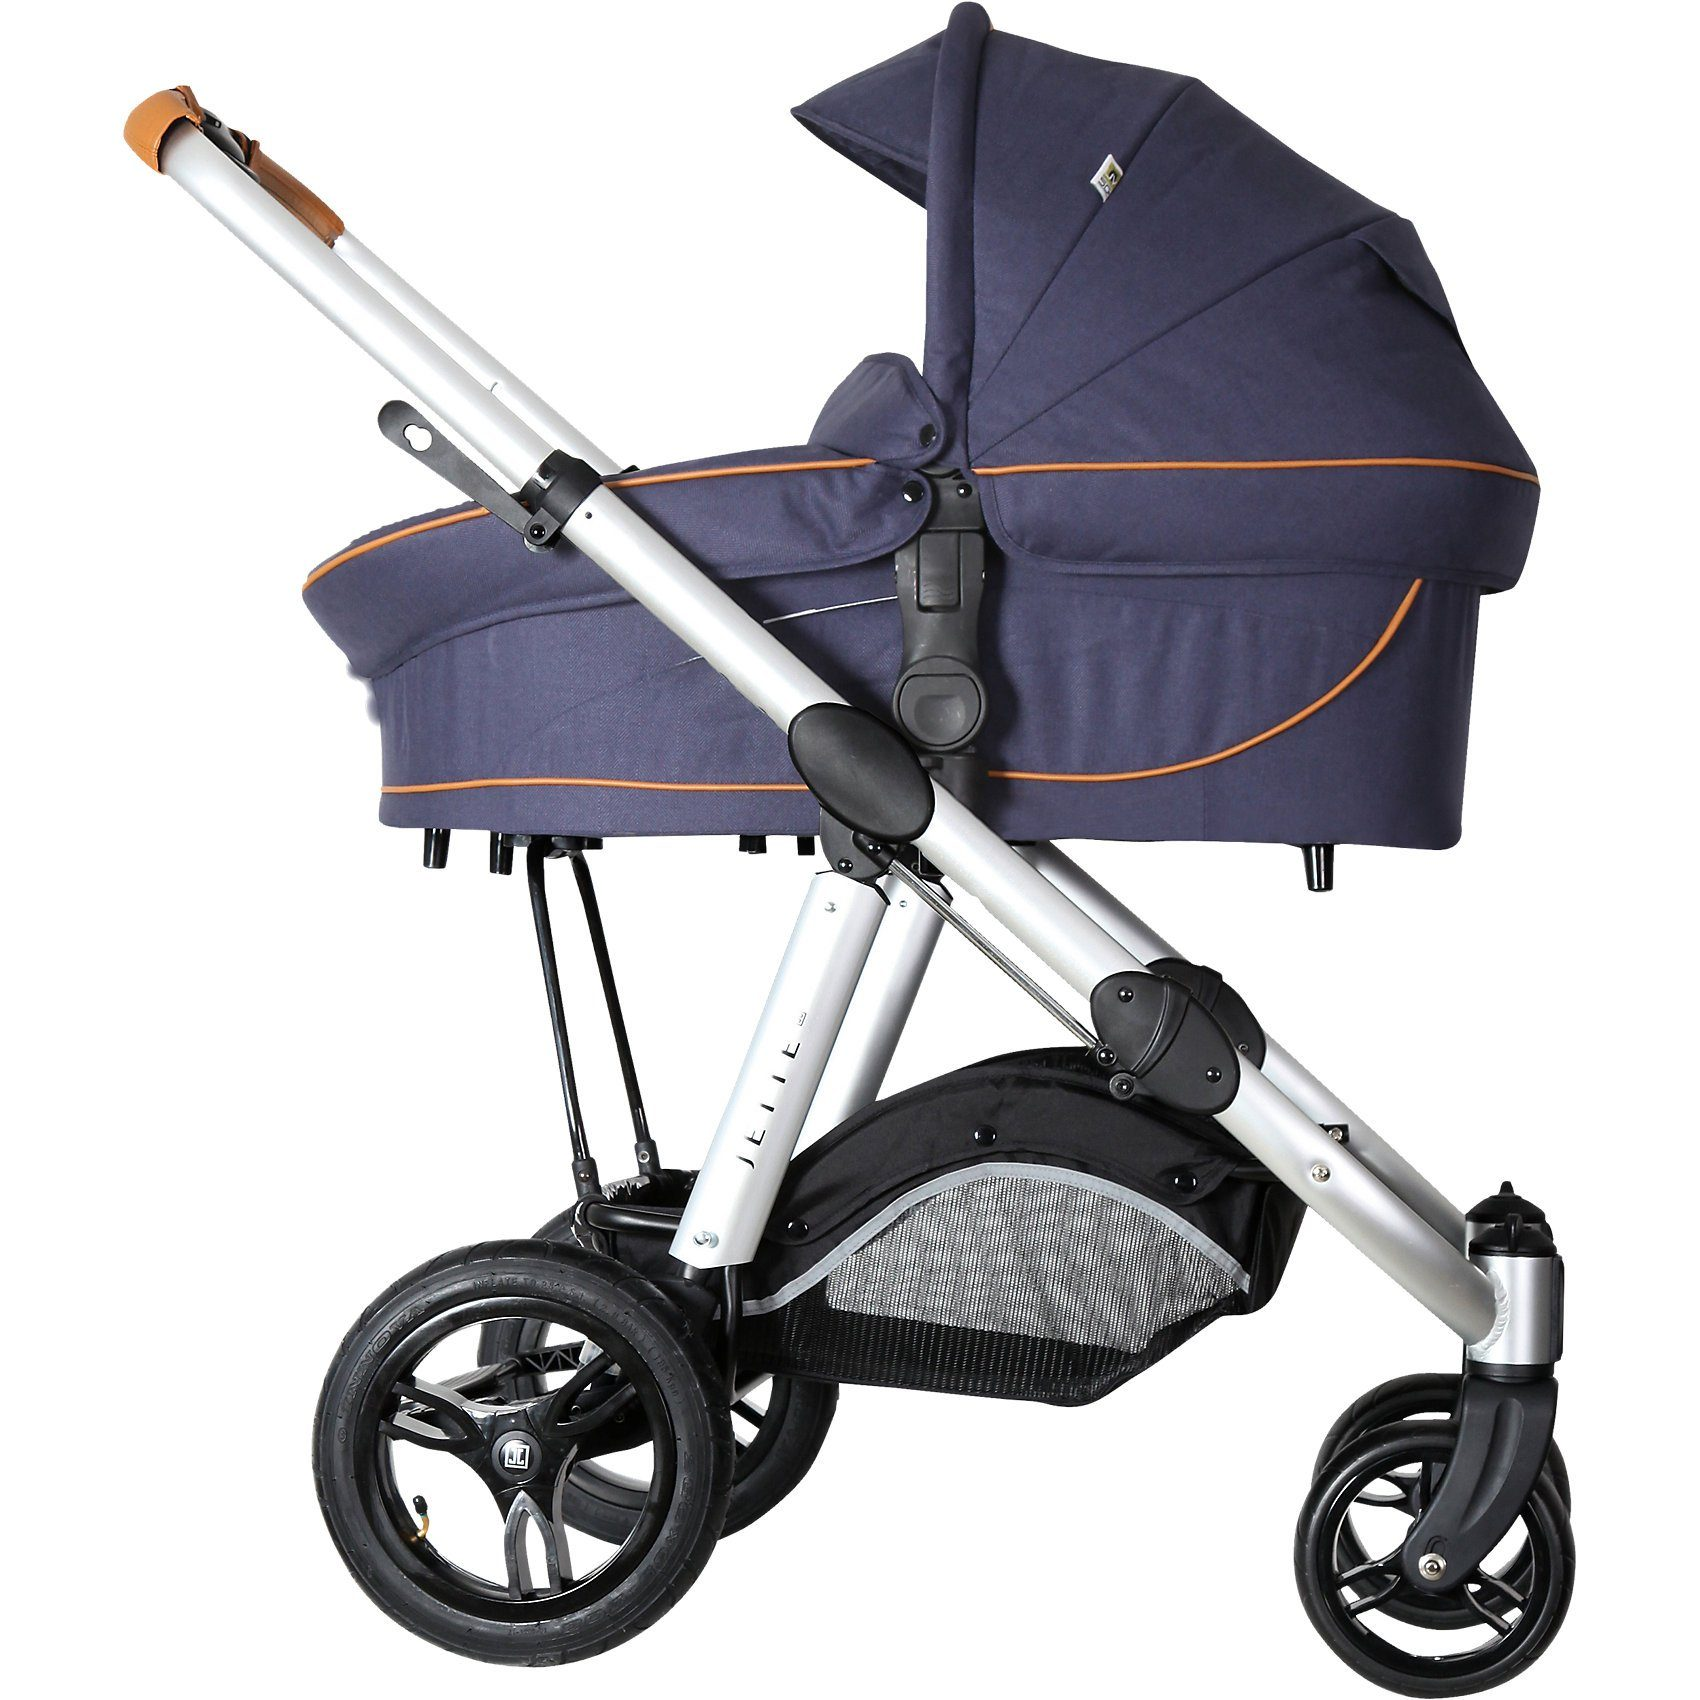 Jette Kinderwagen Kombi Kinderwagen JOEL AIR, fishbone navy